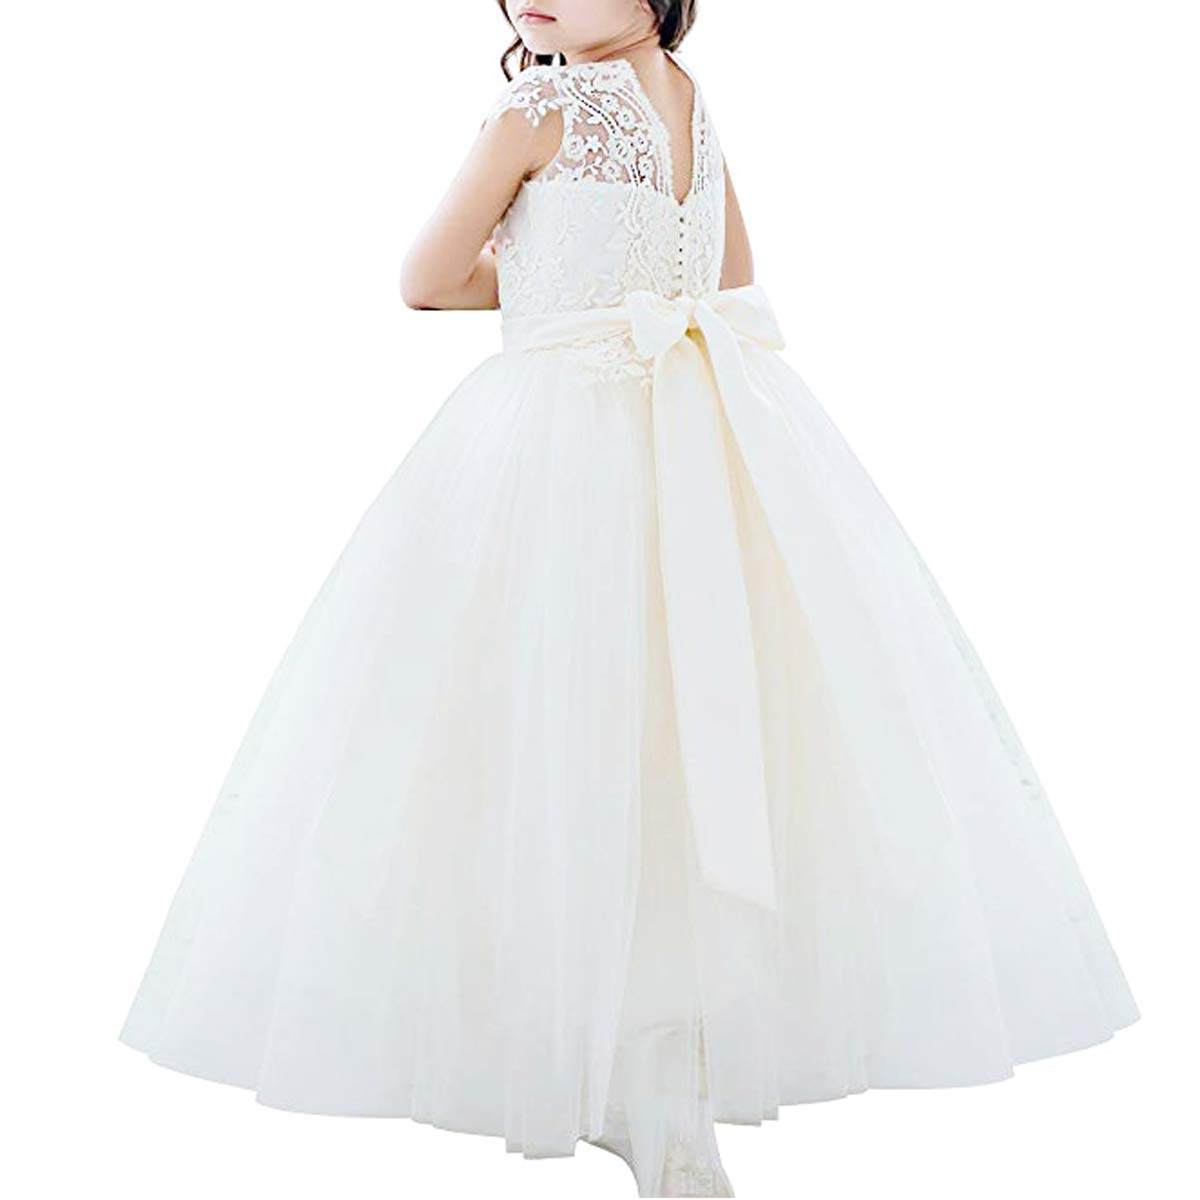 Flower Girls Ivory Lace Bridesmaid Dresses Long A line Tulle Wedding Princess Pageant Party Gown First Communion 2-13Y